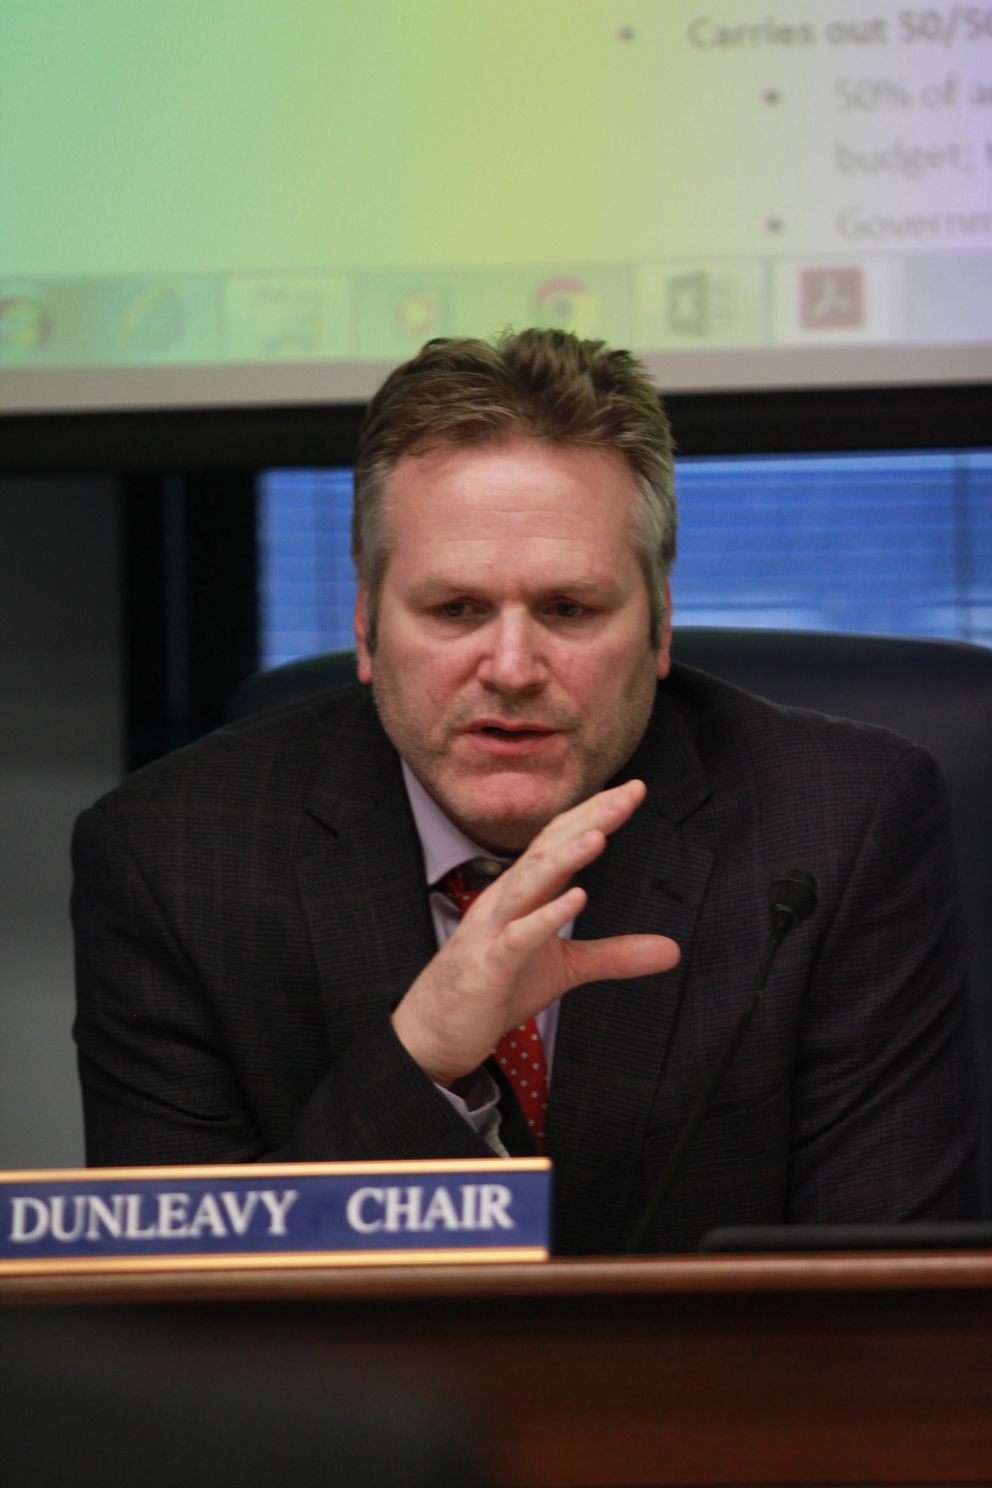 Wasilla Republican Sen. Mike Dunleavy presents his proposal to restructure the Alaska Permanent Fund at a meeting of the Senate State Affairs Committee on Thursday. (Nathaniel Herz / Alaska Dispatch News)